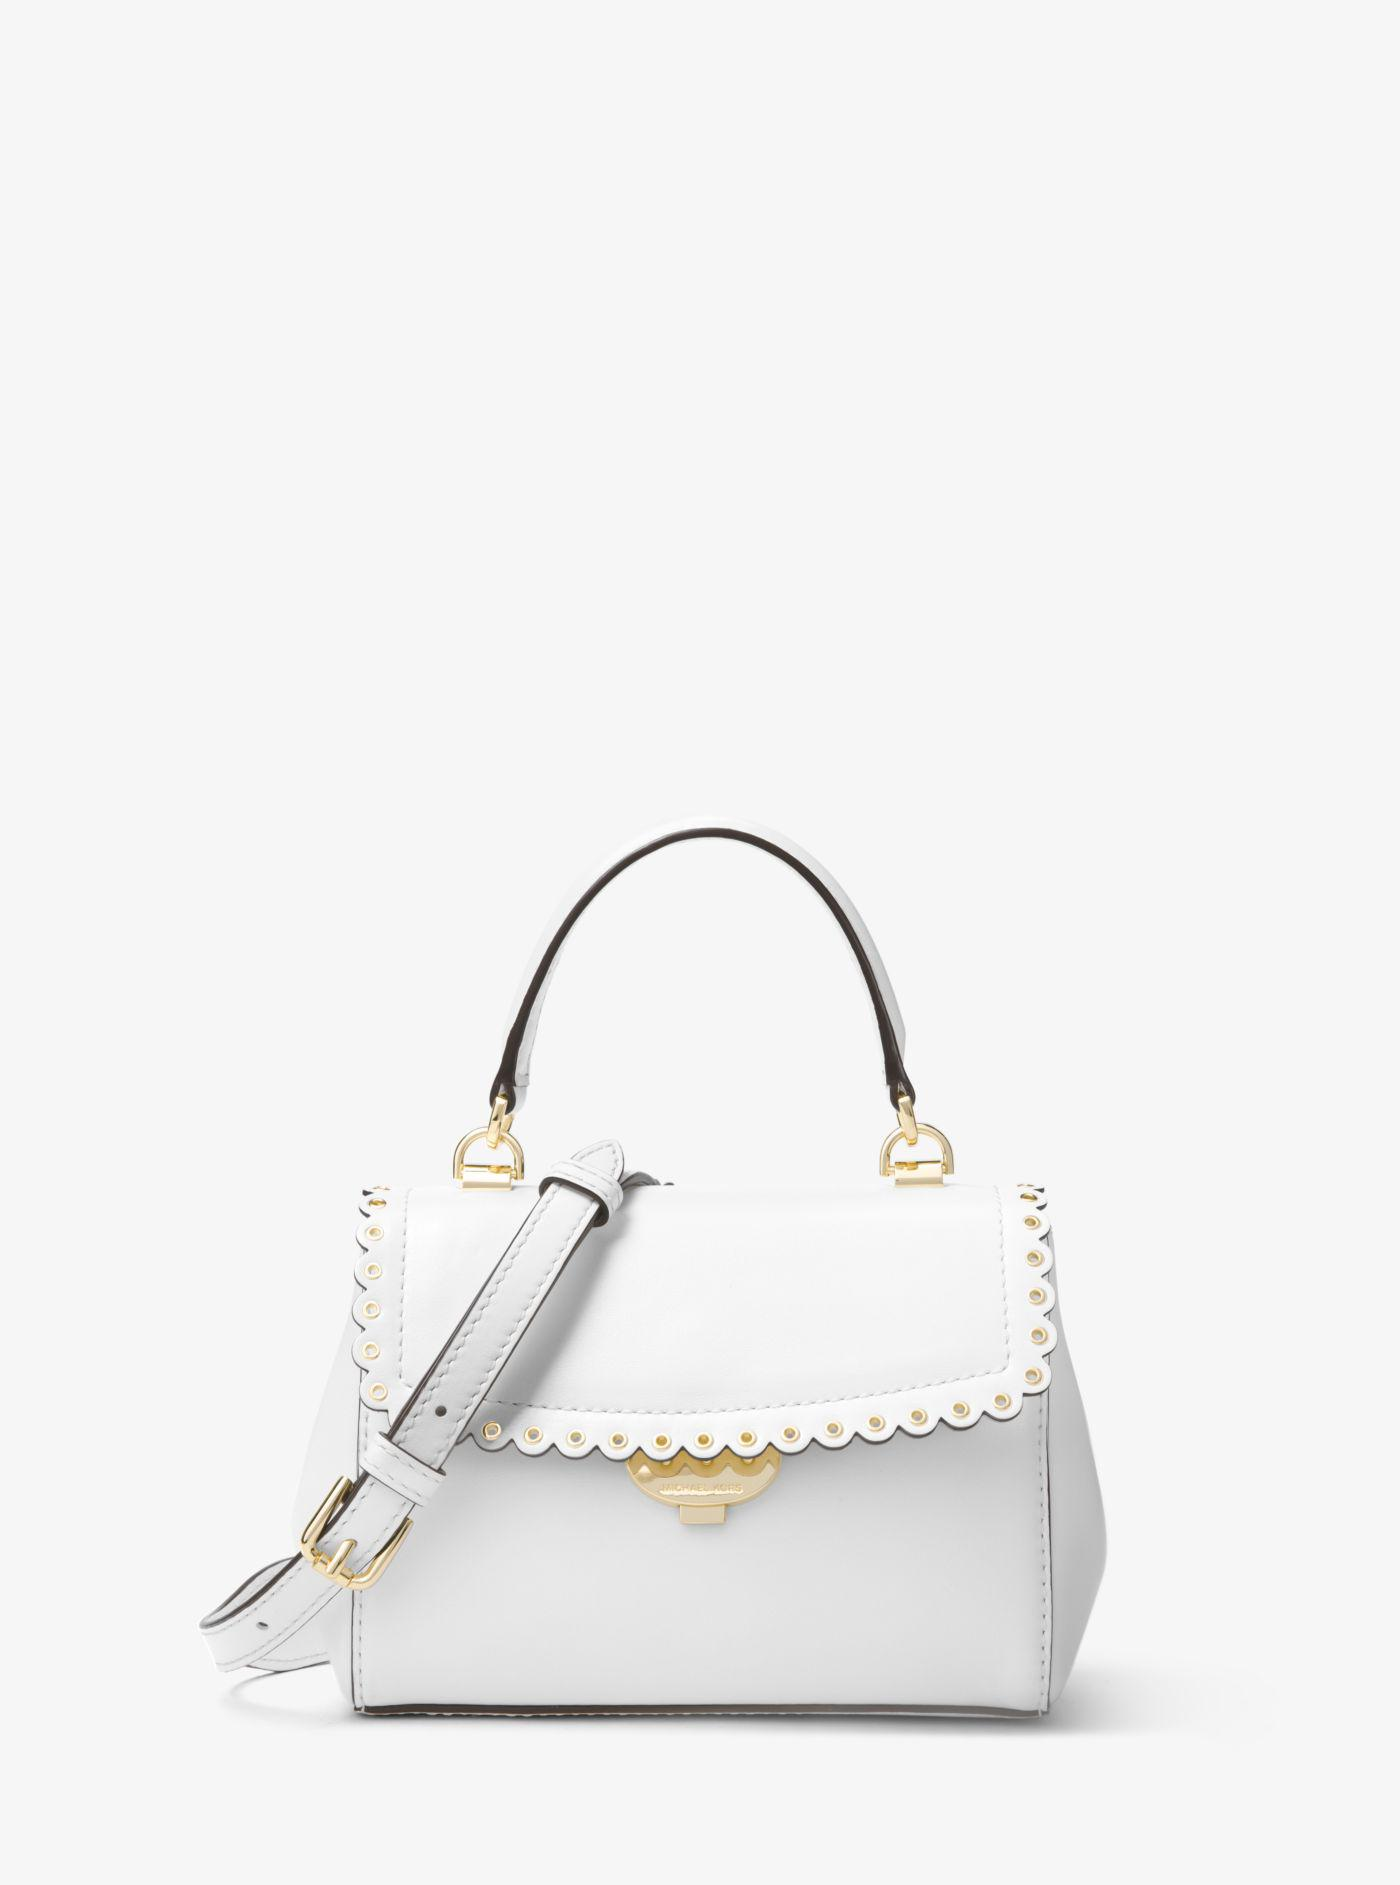 6b45b4ef056217 Michael Kors Ava Extra-small Scalloped Leather Crossbody in White - Lyst